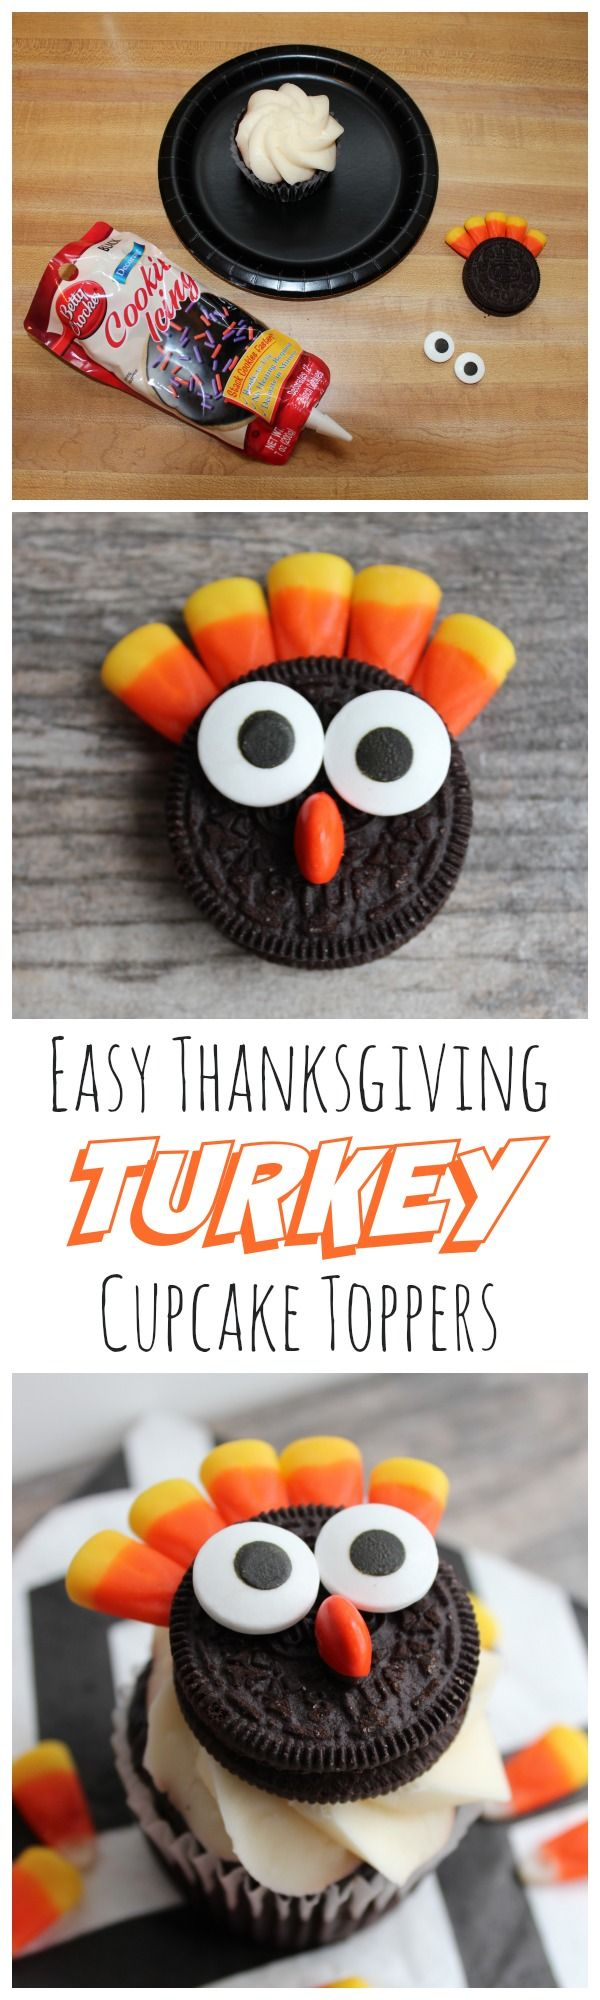 Easy Double Stuff Oreo Turkey Cupcake Toppers - my kids will definitely eat their Thanksgiving dinner for this! (Halloween Bake For Kids)